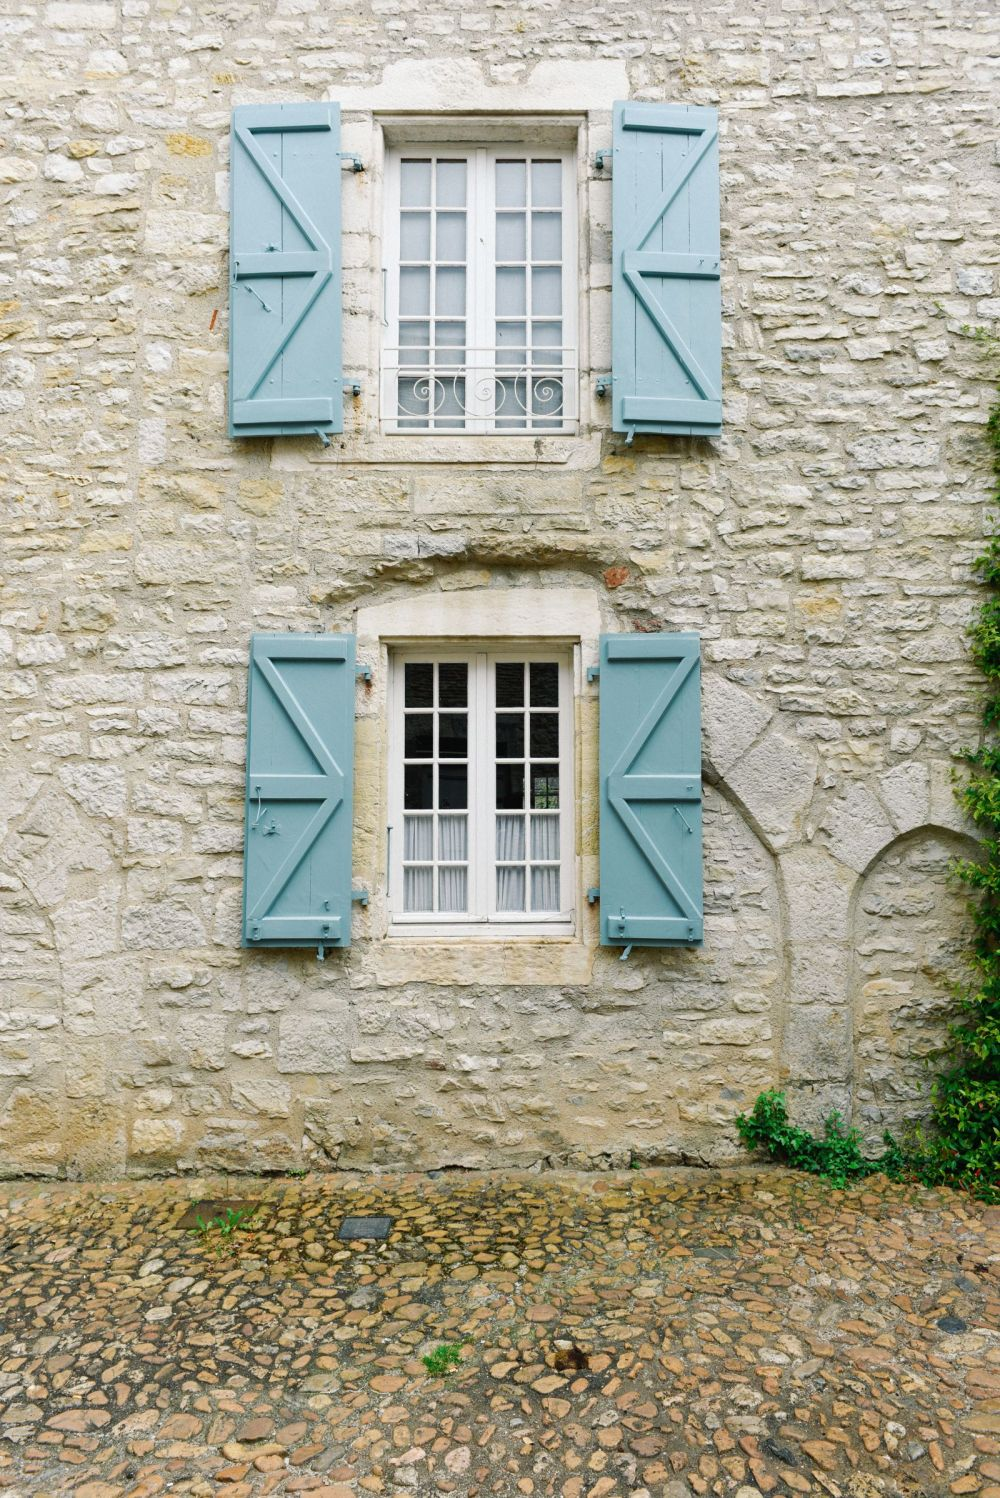 The Beautiful French Village Of Martel... In Dordogne Valley, France (36)